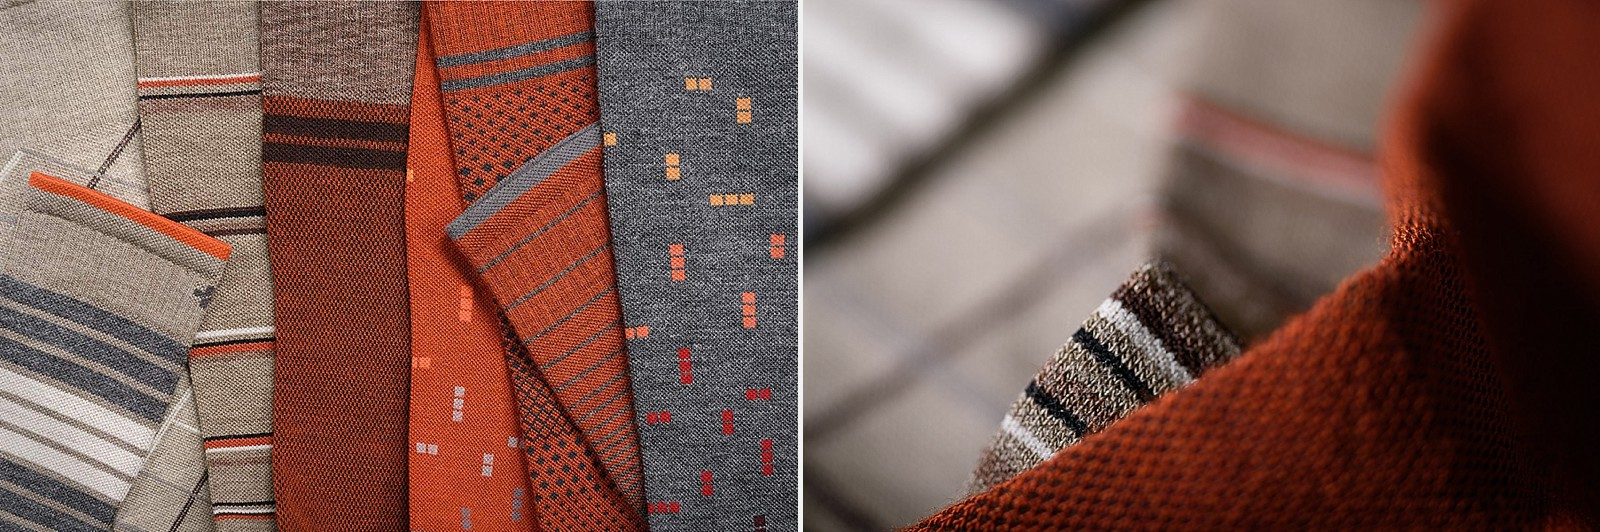 017b-Fall2016Sockwell-Textiles-DotsonCommercial